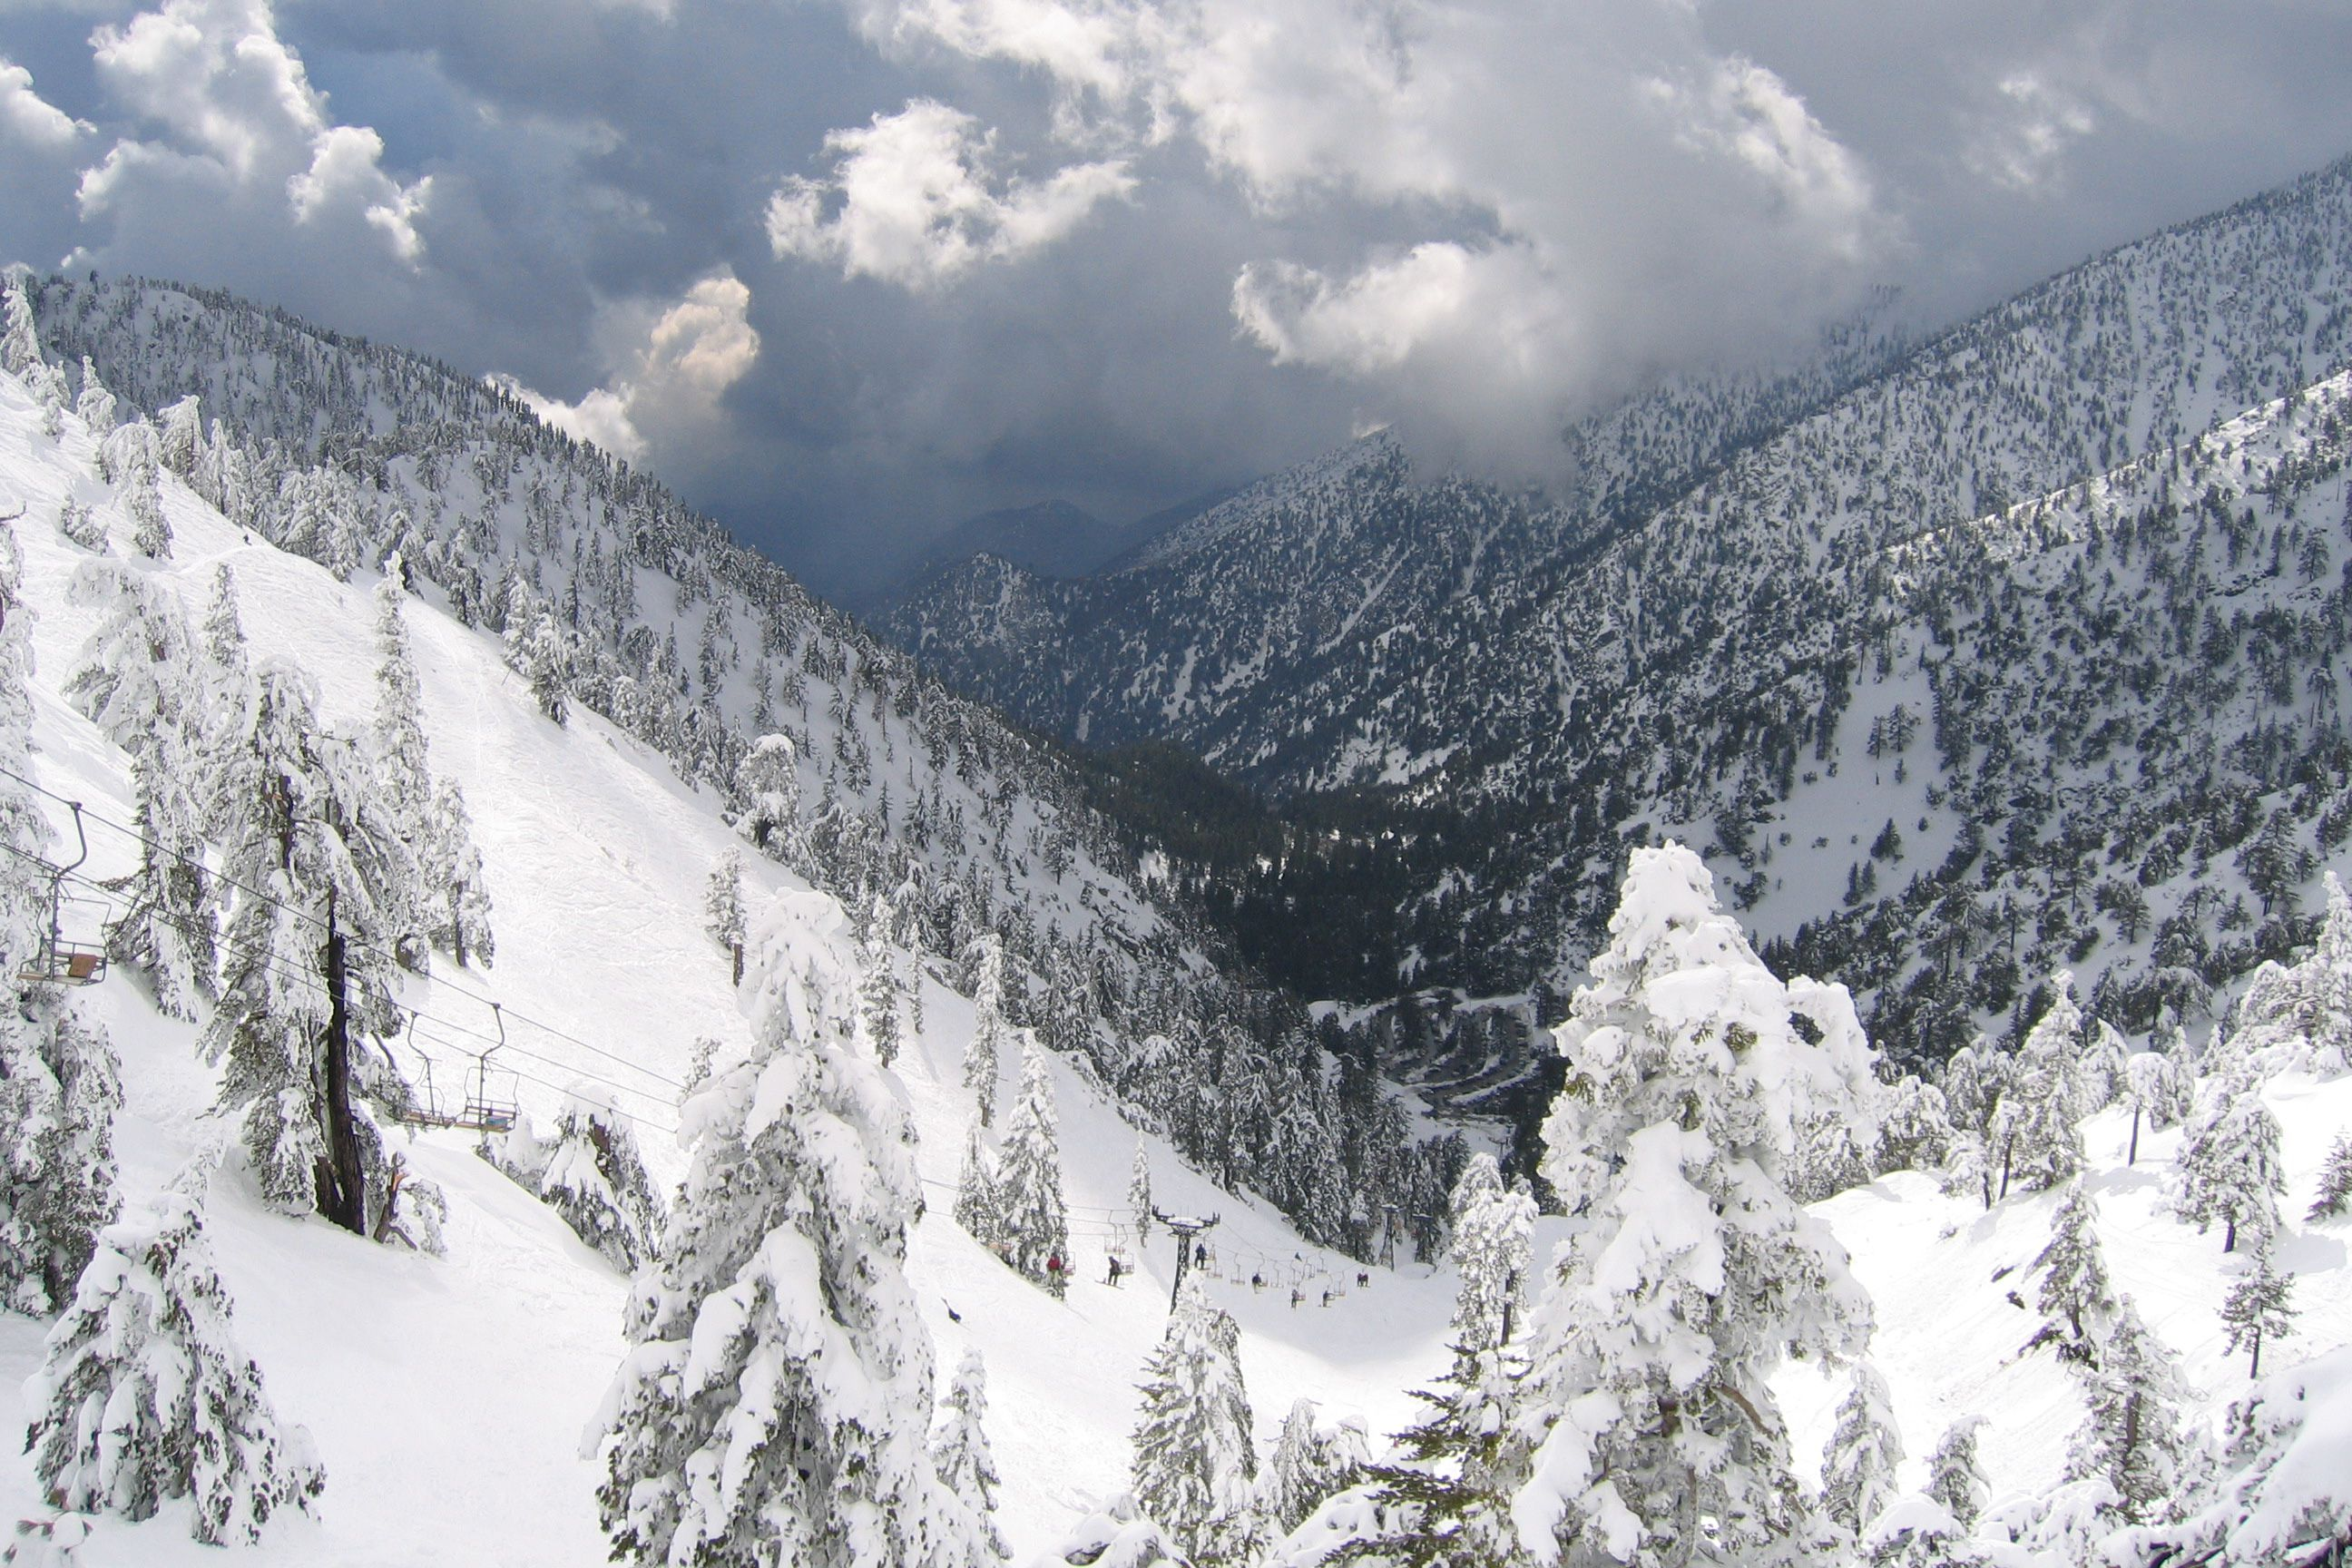 The view from the Top of the Notch restaurant at Mt. Baldy looking toward Los Angeles